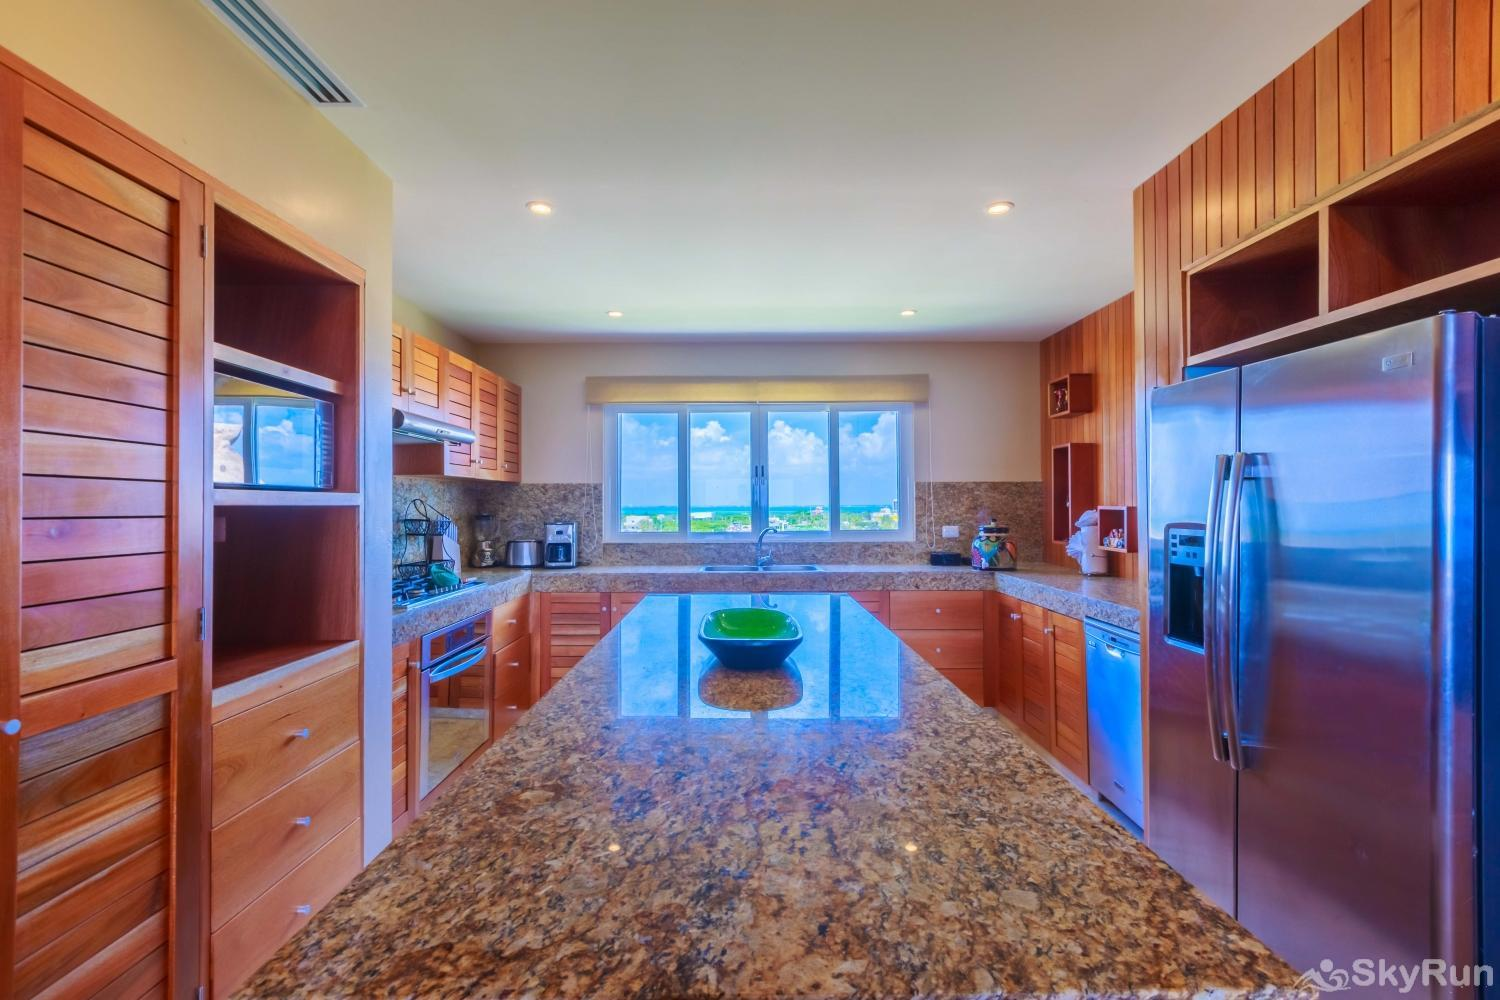 NEW Isla Mujeres Oceanview luxury 3 BR Villa Spacious and marble countertops full equipped kitchen